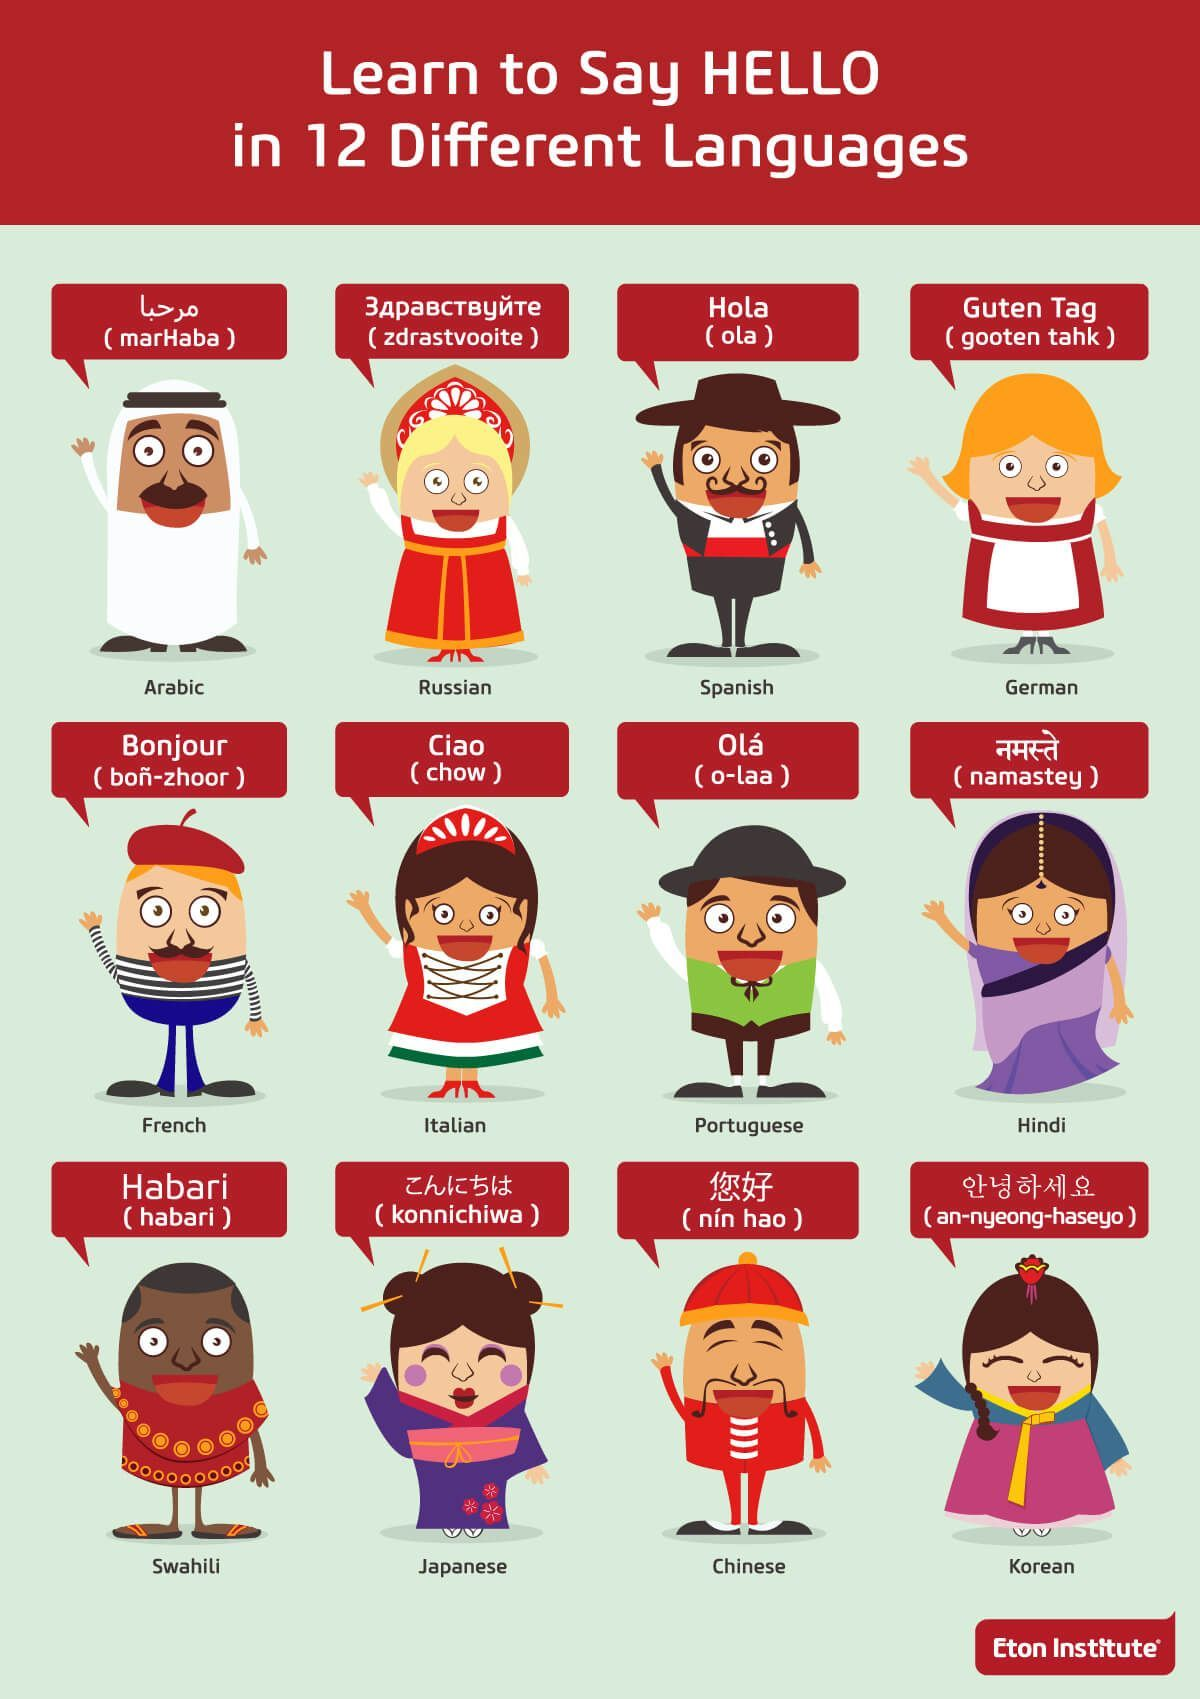 How to Say Hello in Different Languages Infographic